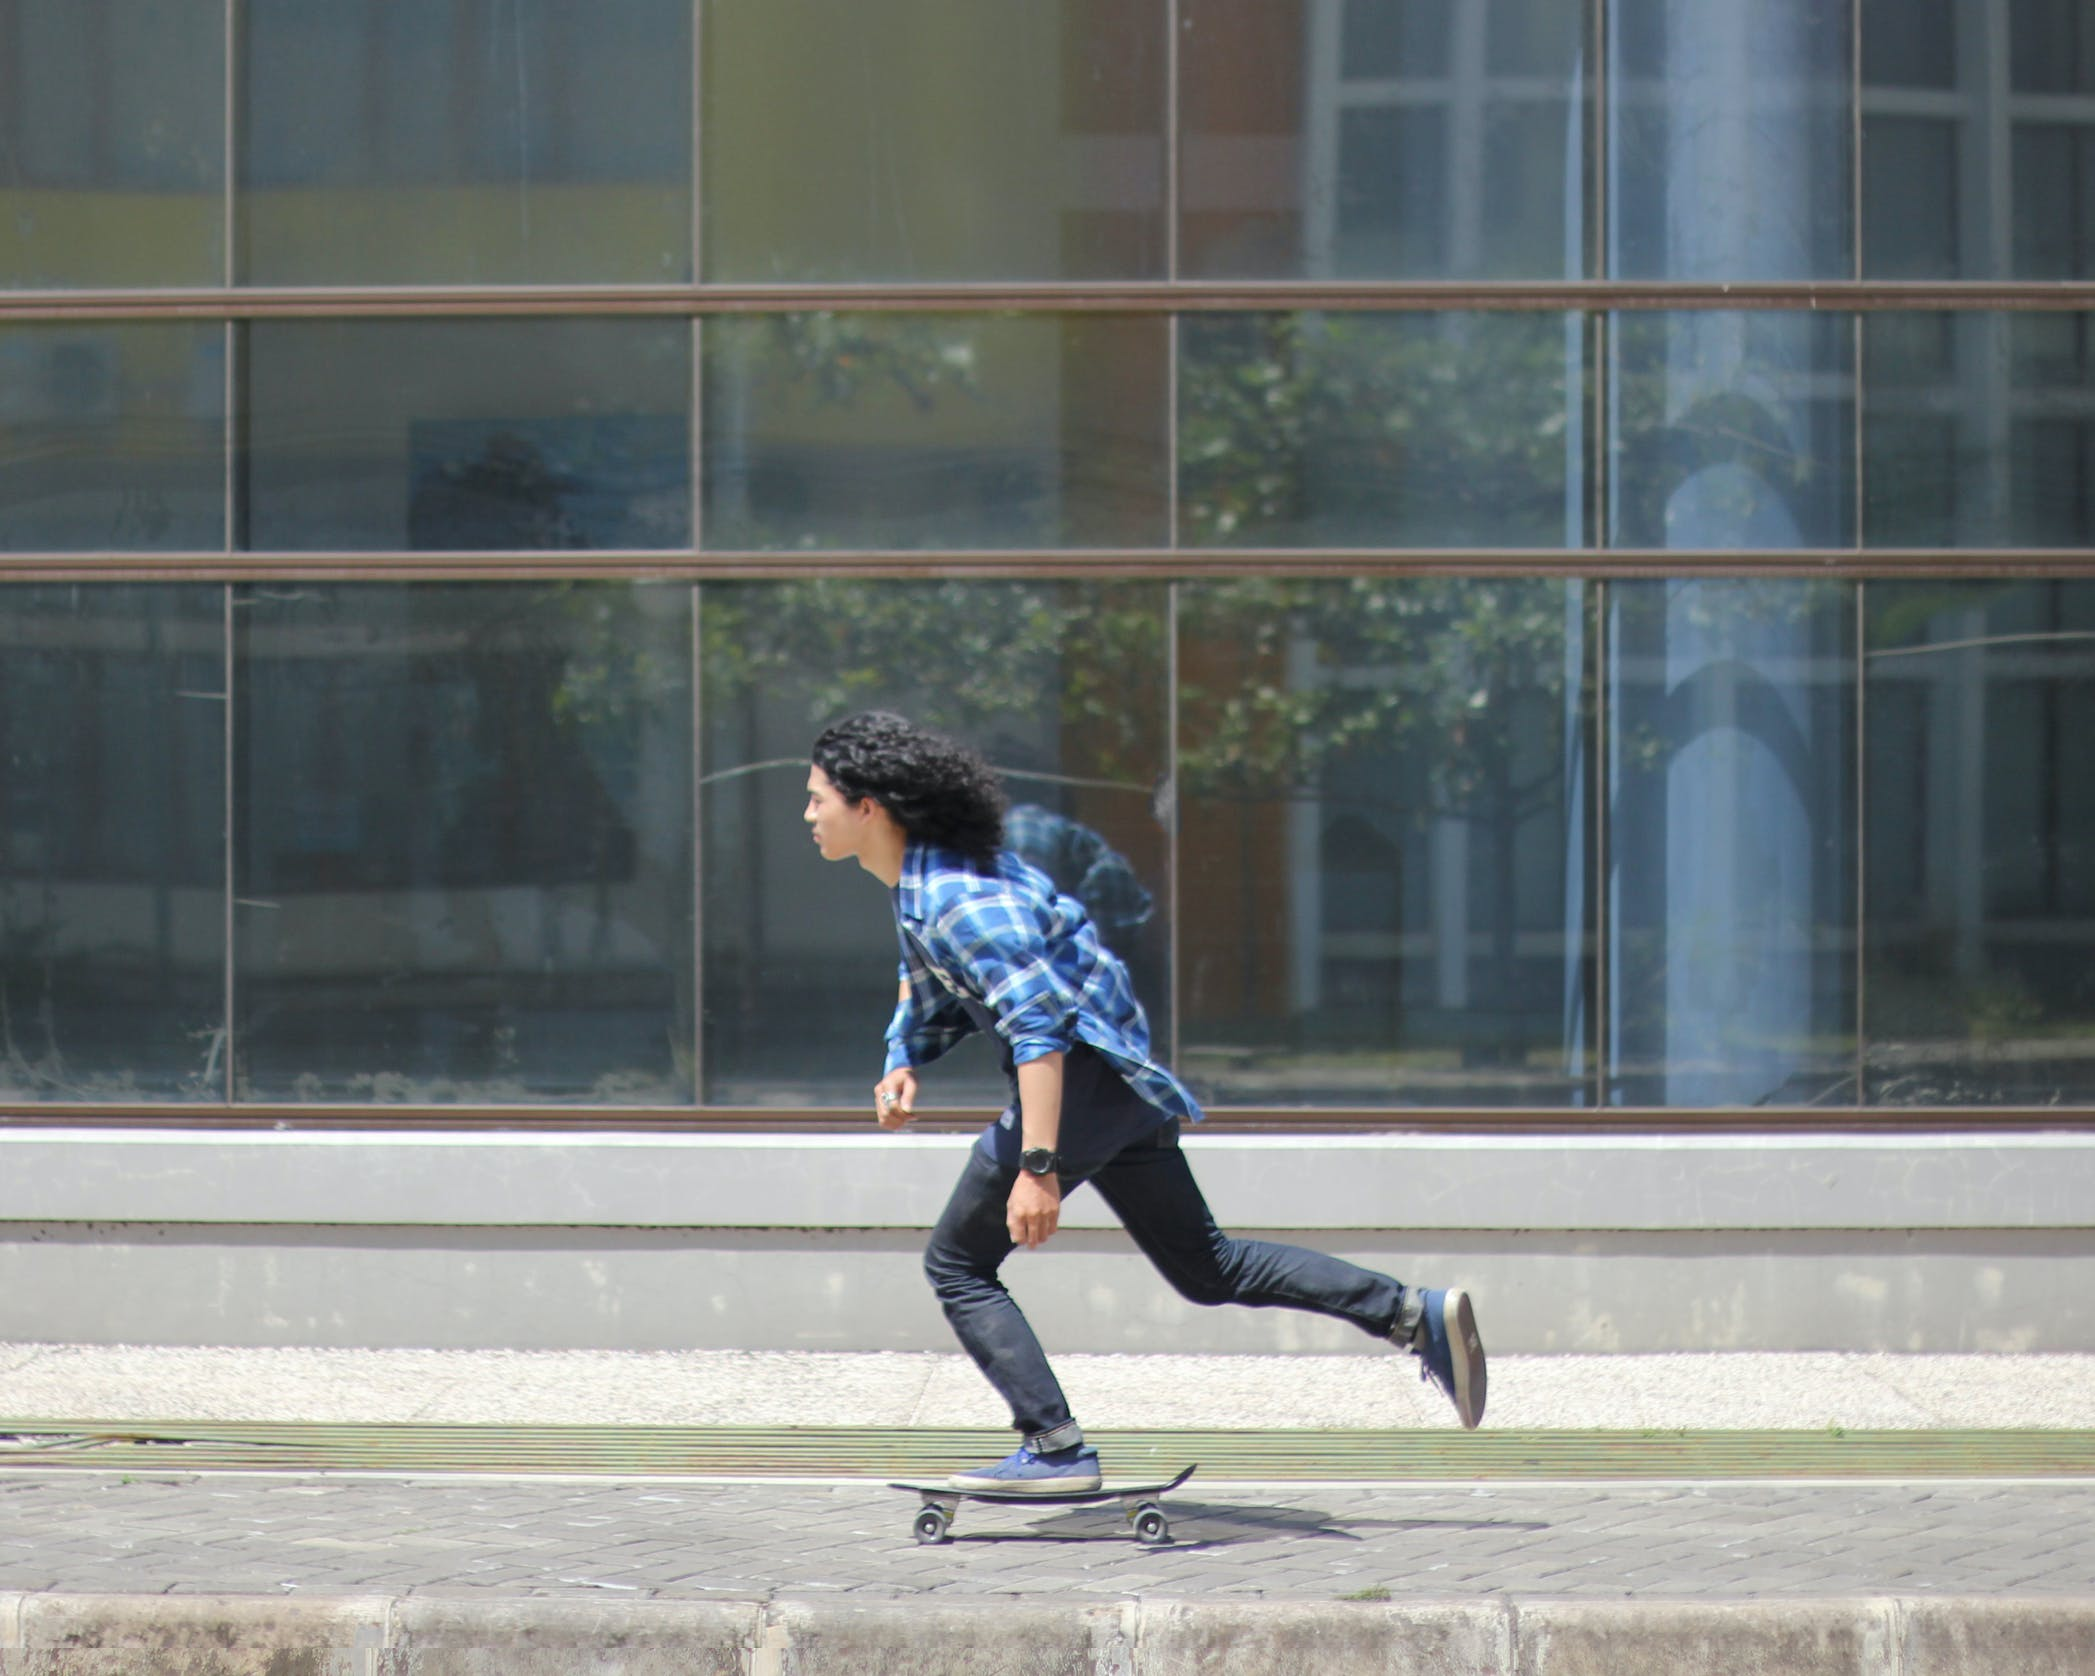 Man in Sport Shirt Riding Skateboard